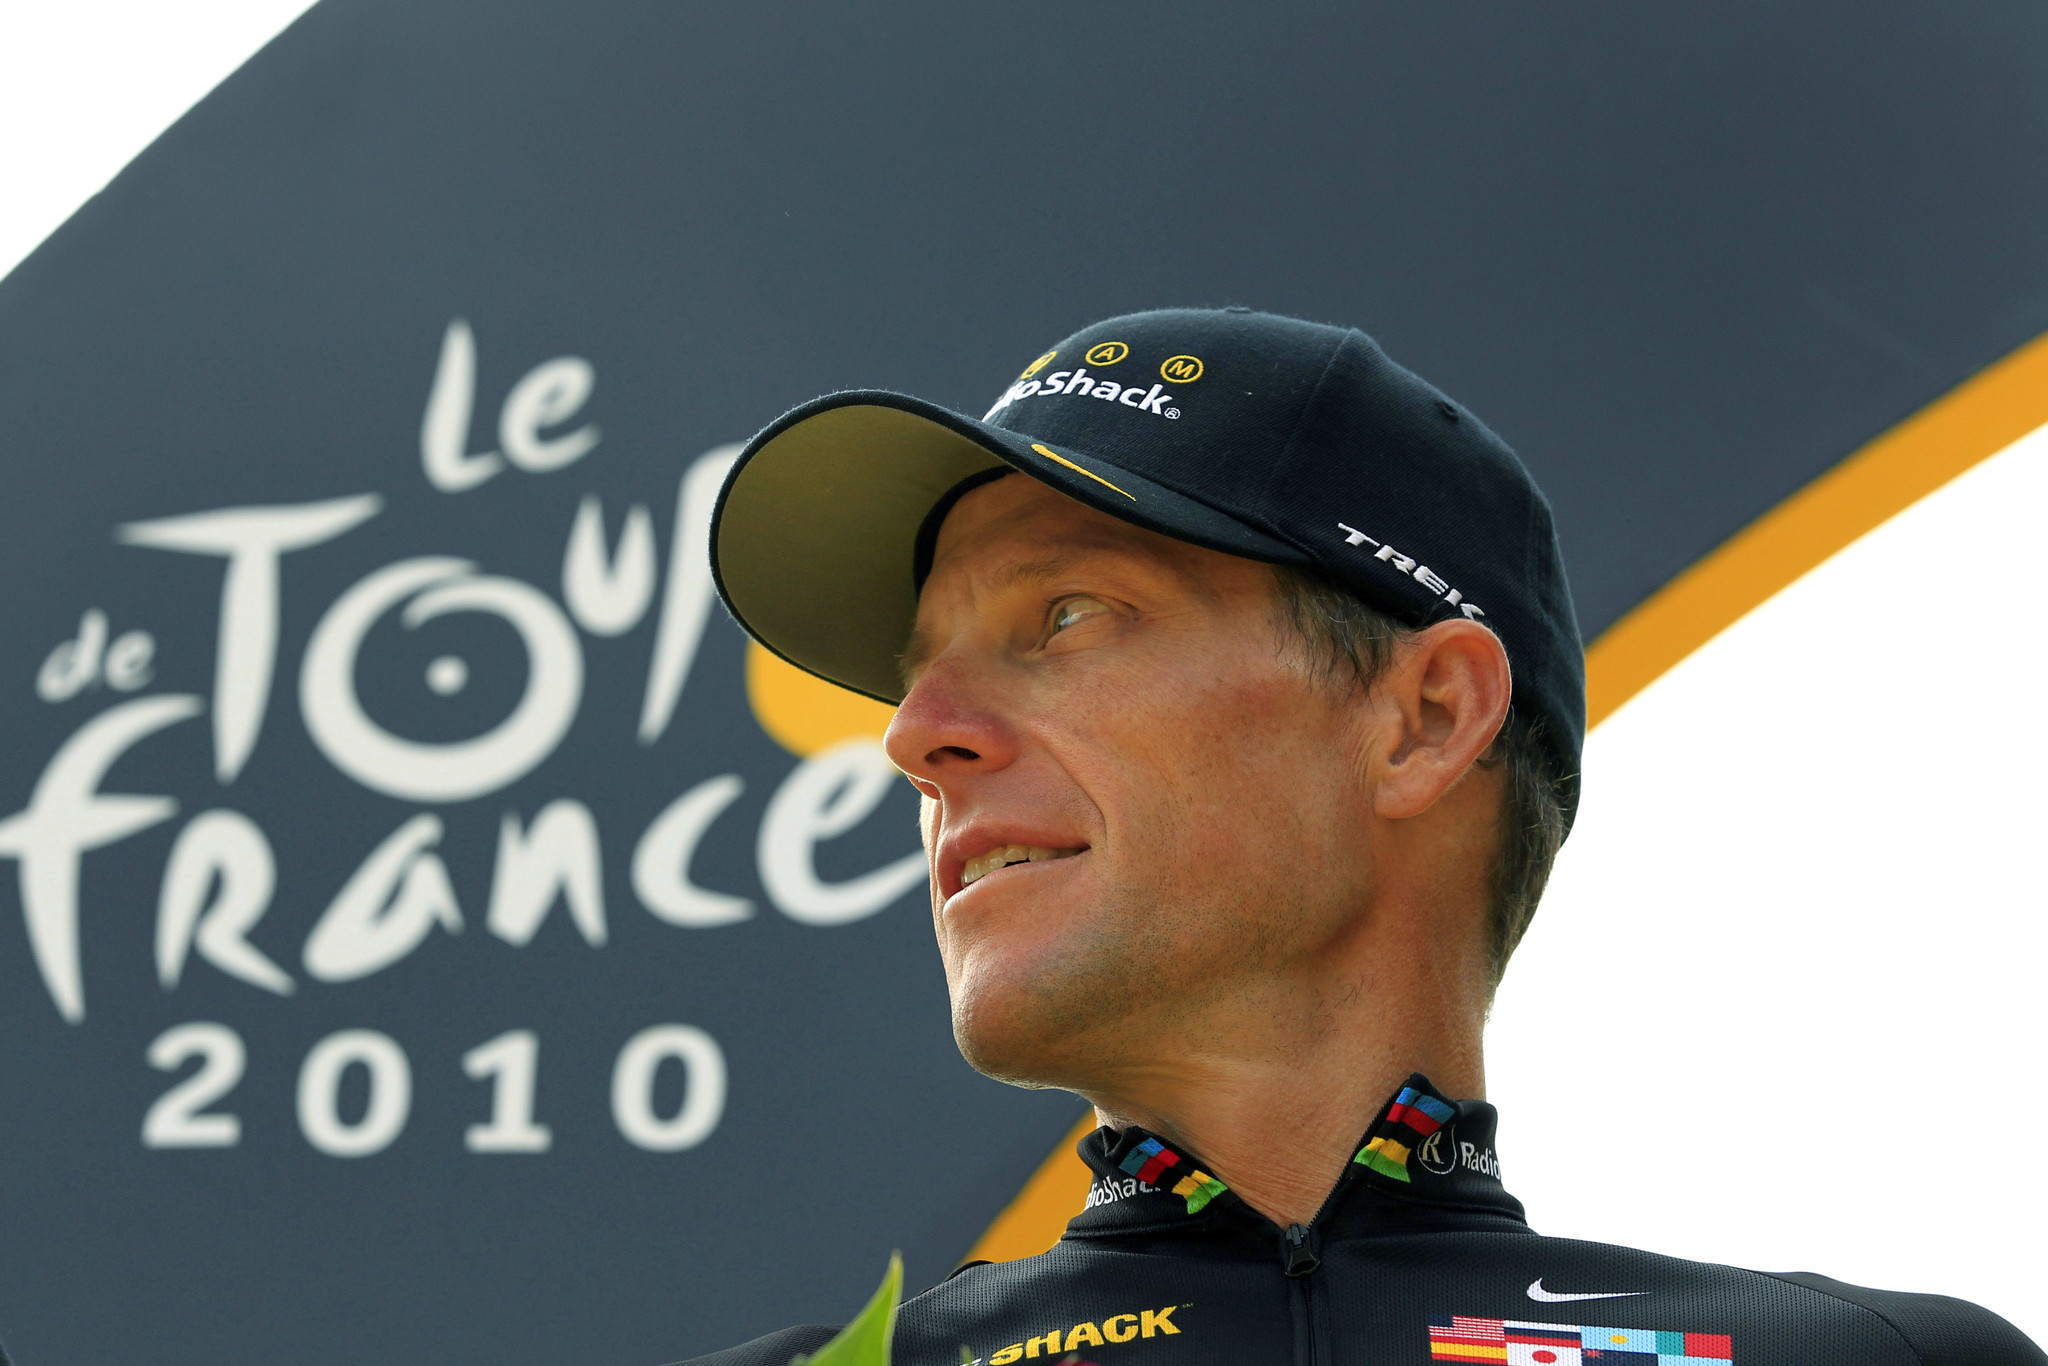 Lance Armstrong Asked To Stay Away From Tour De France